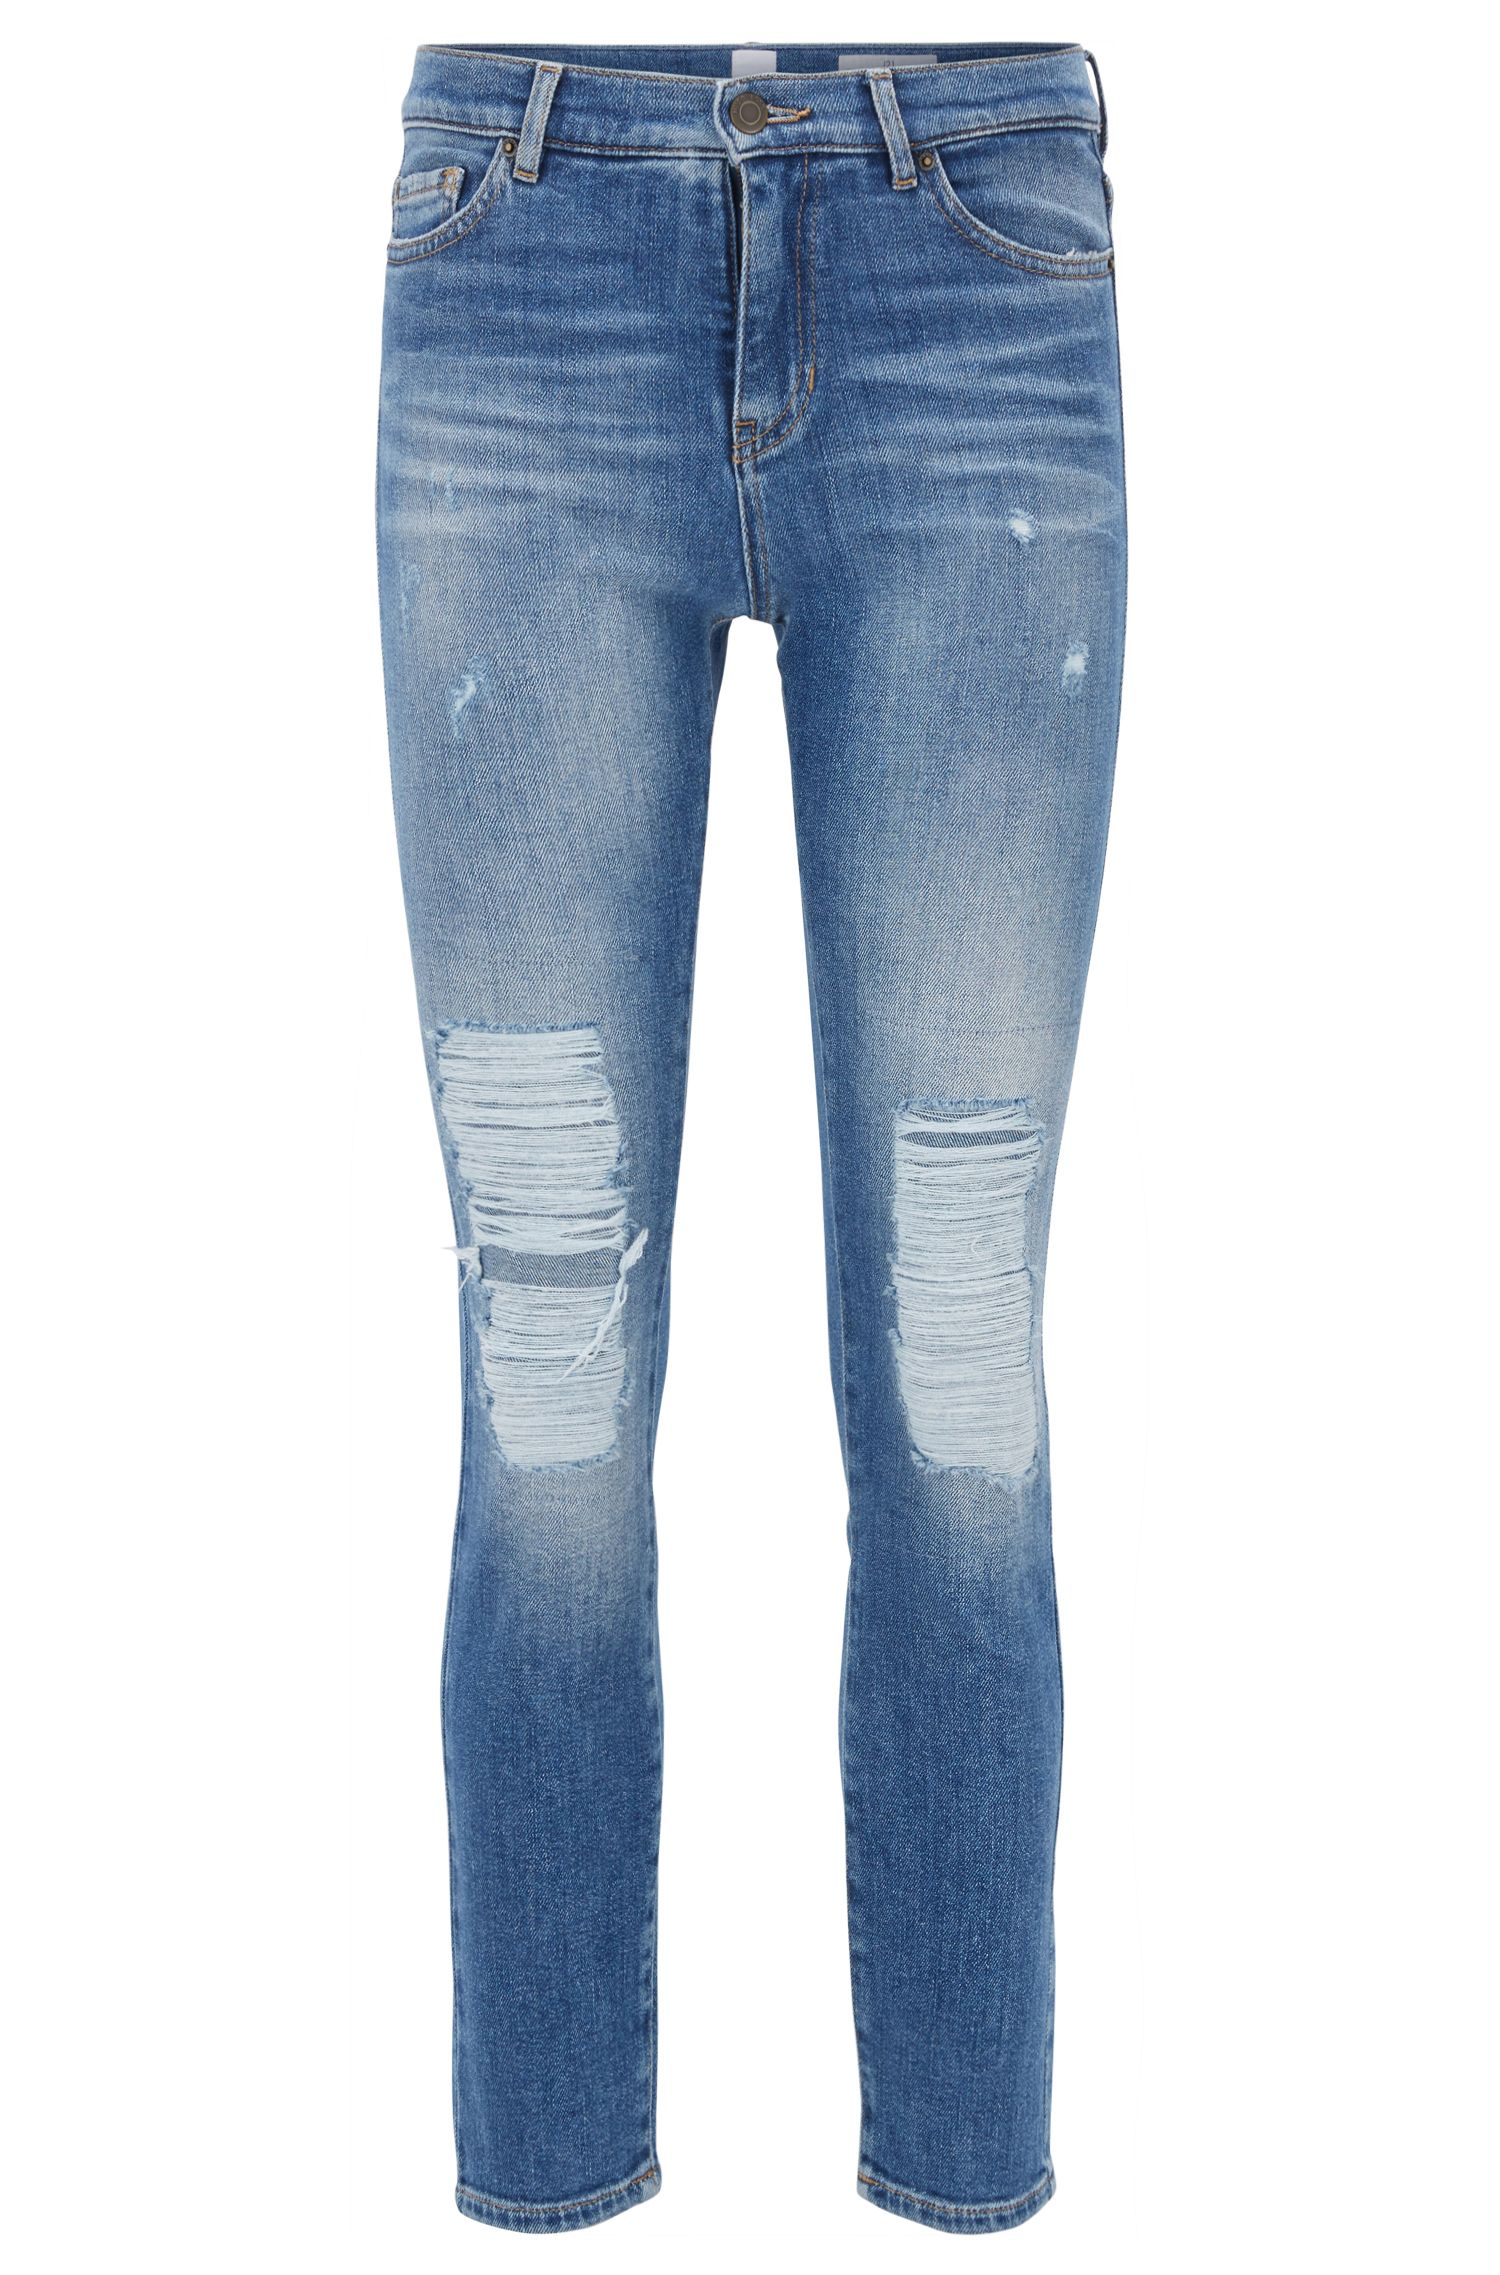 Slim-Fit Jeans in Cropped-Länge mit starken Used-Effekten